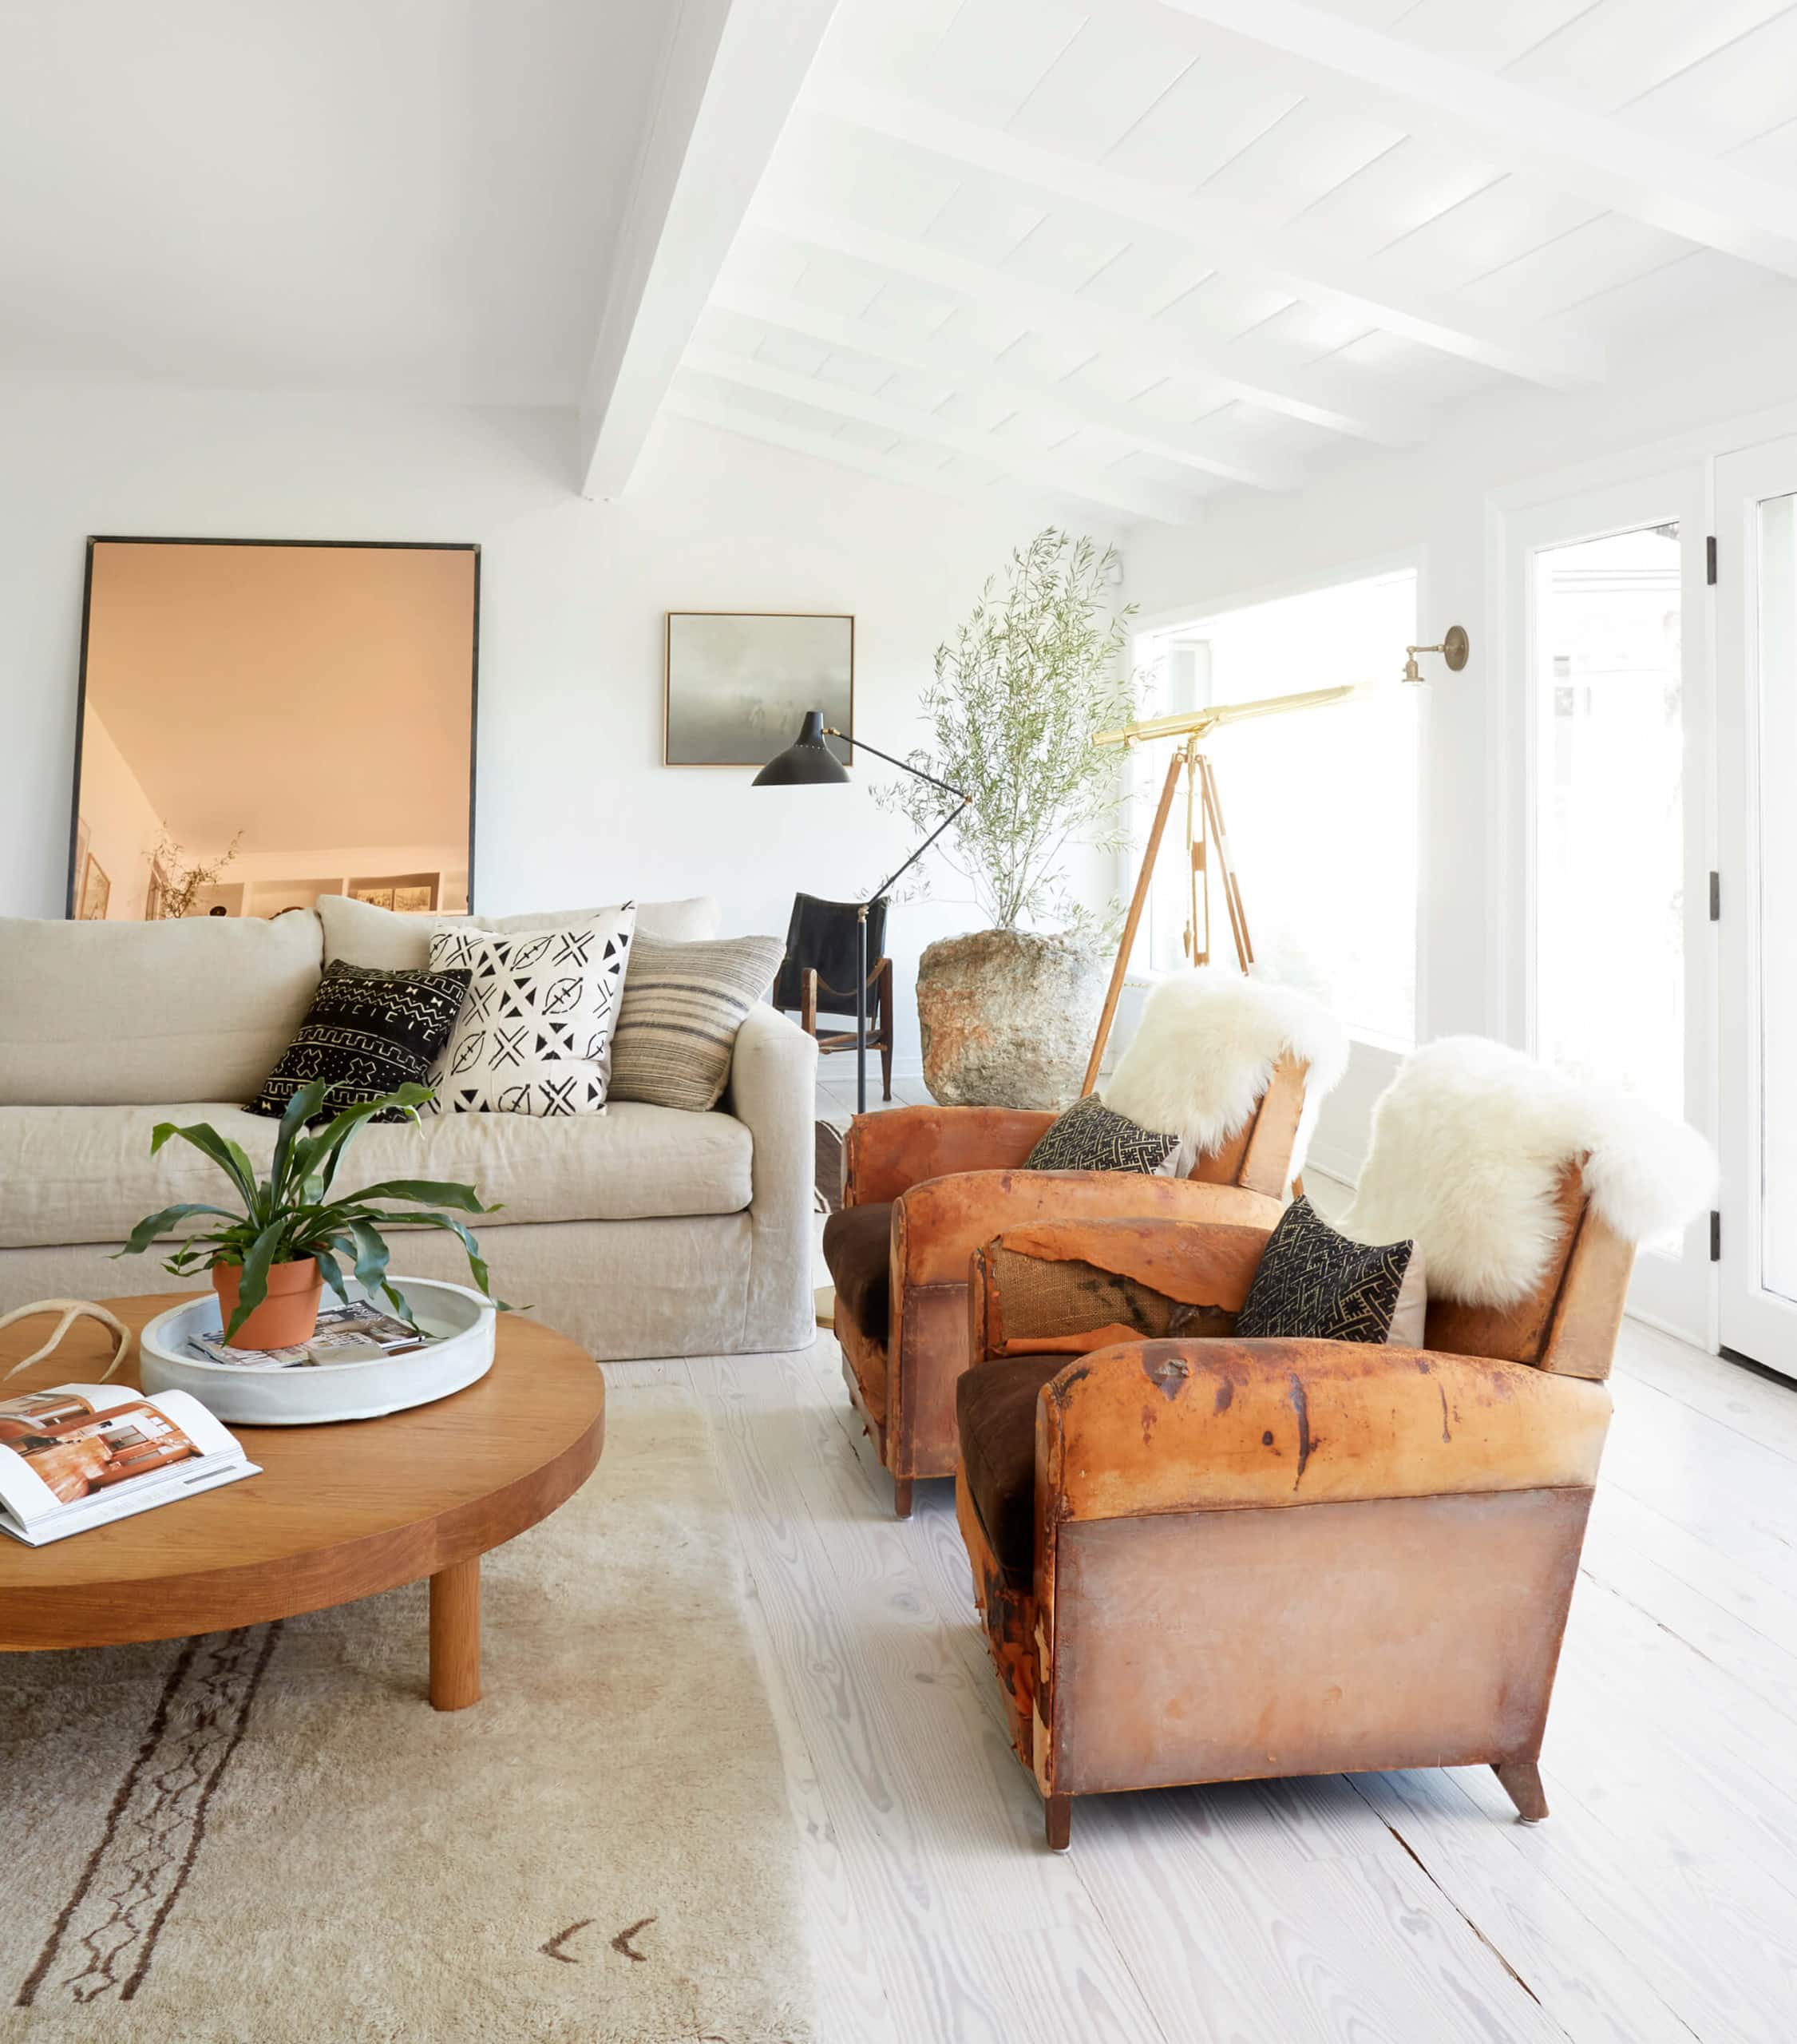 california cool living room with vintage leather armchairs and mid century lighting